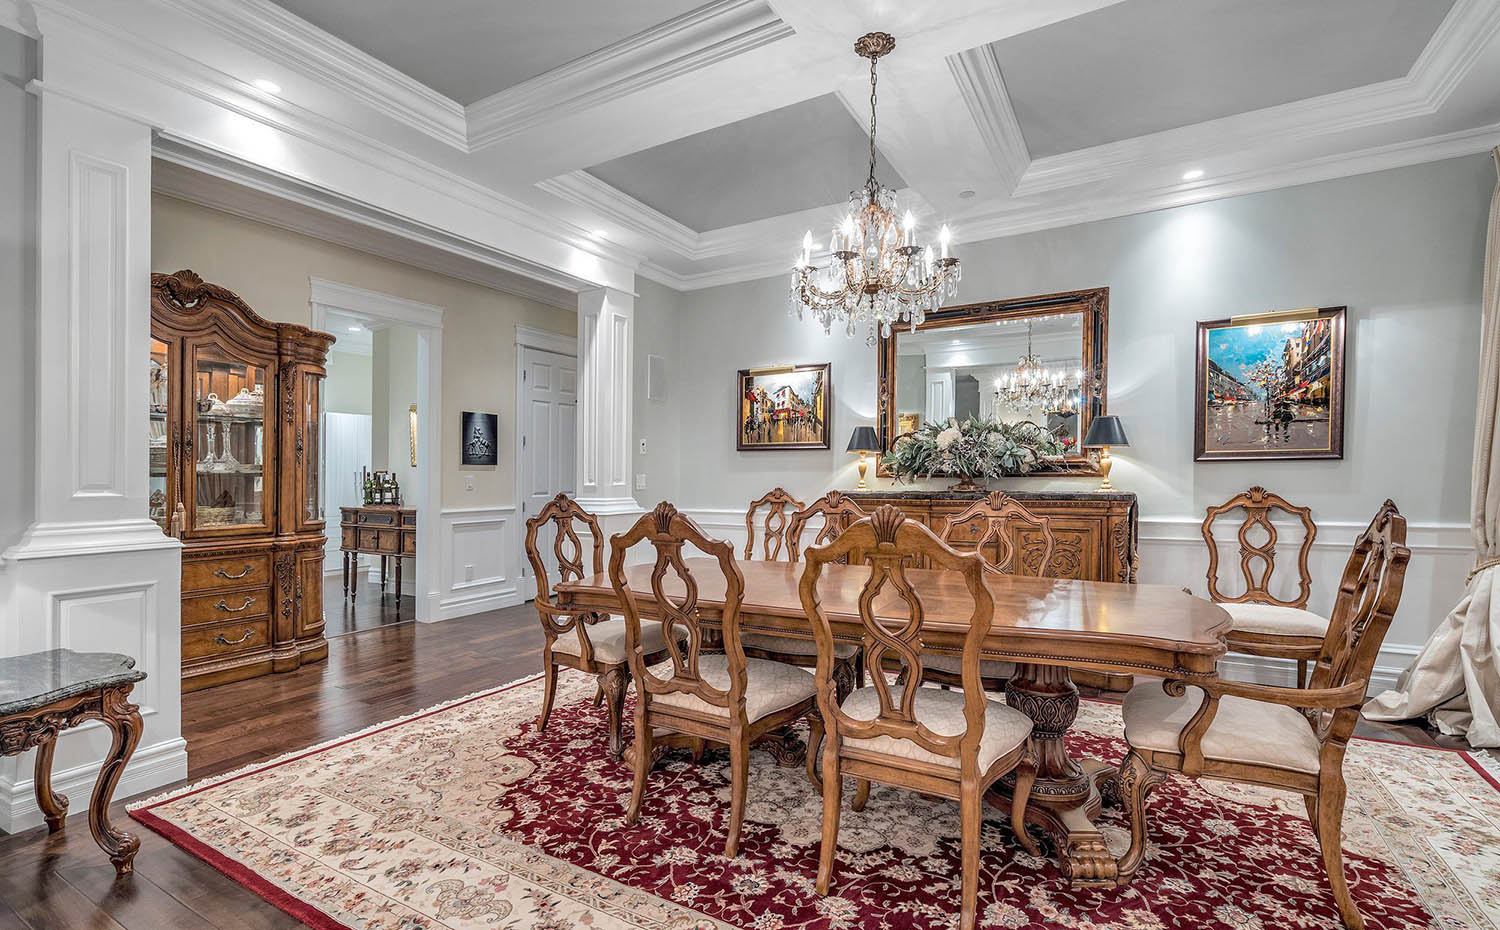 Dining room coffered ceiling with gray walls and cofferes, white beams with crown molding, center chandelier.